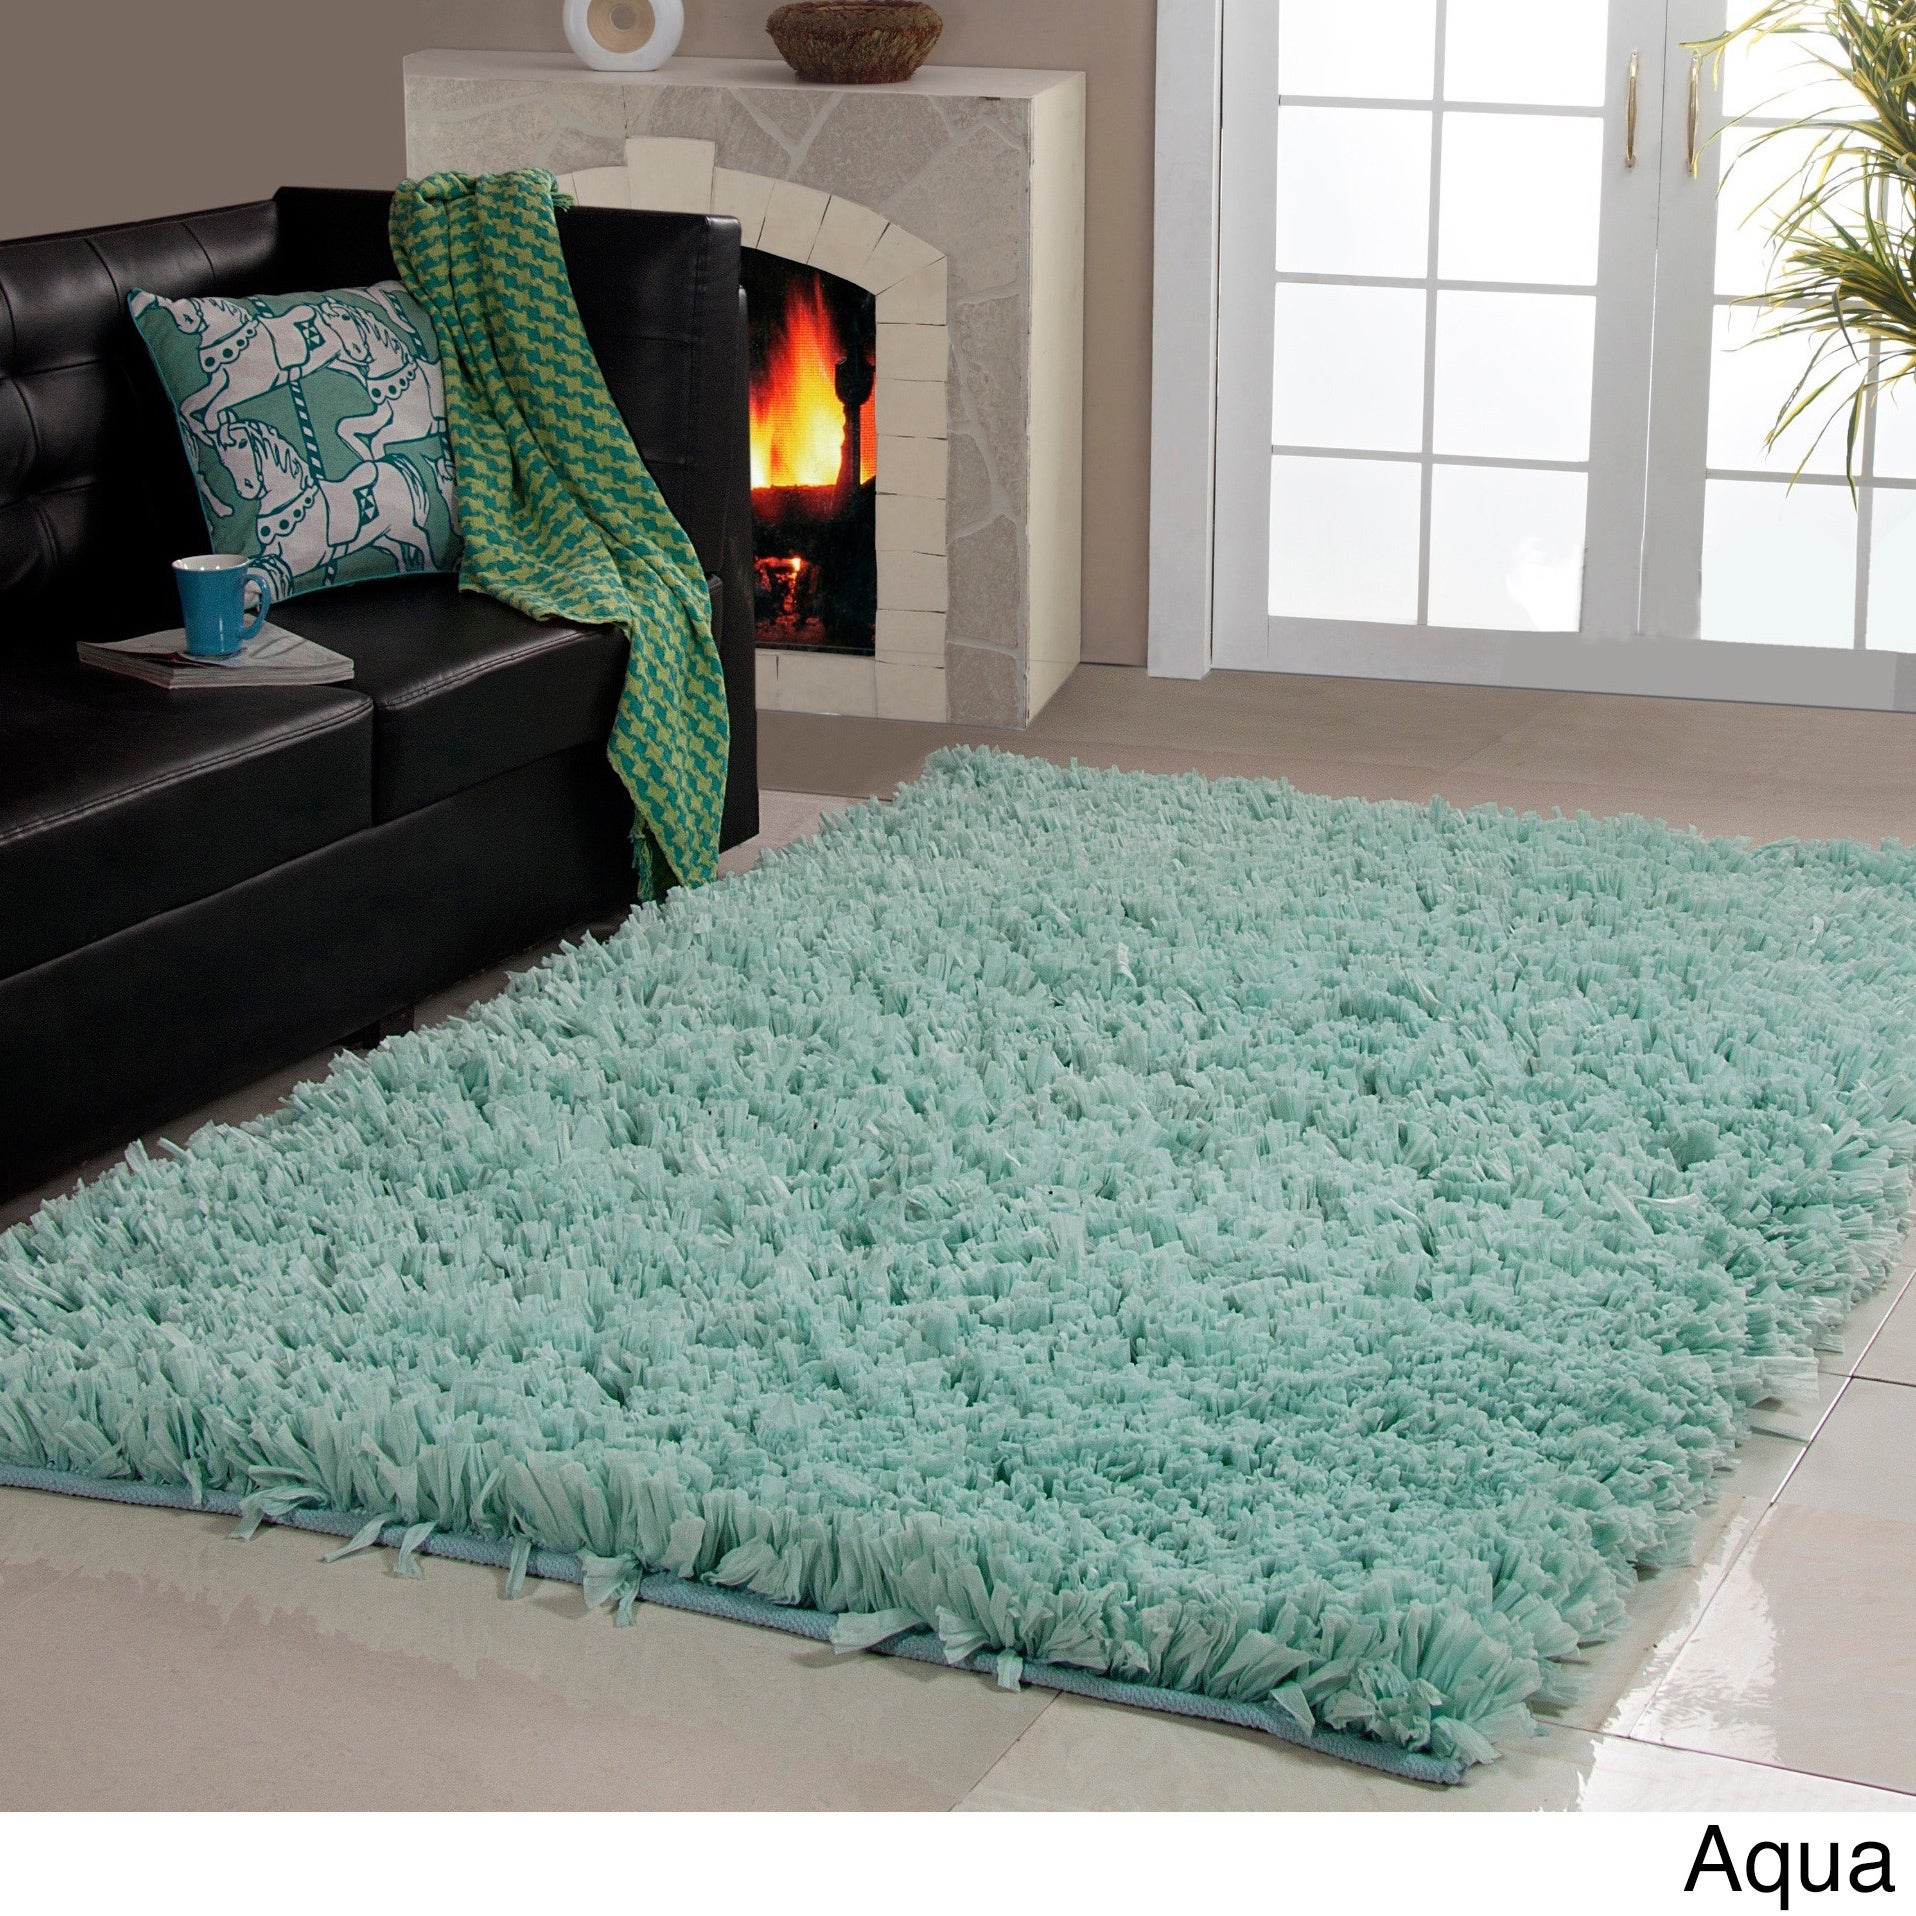 Shop Affinity Home Collection Cozy Shag Area Rug (5\' x 8\') - On Sale ...